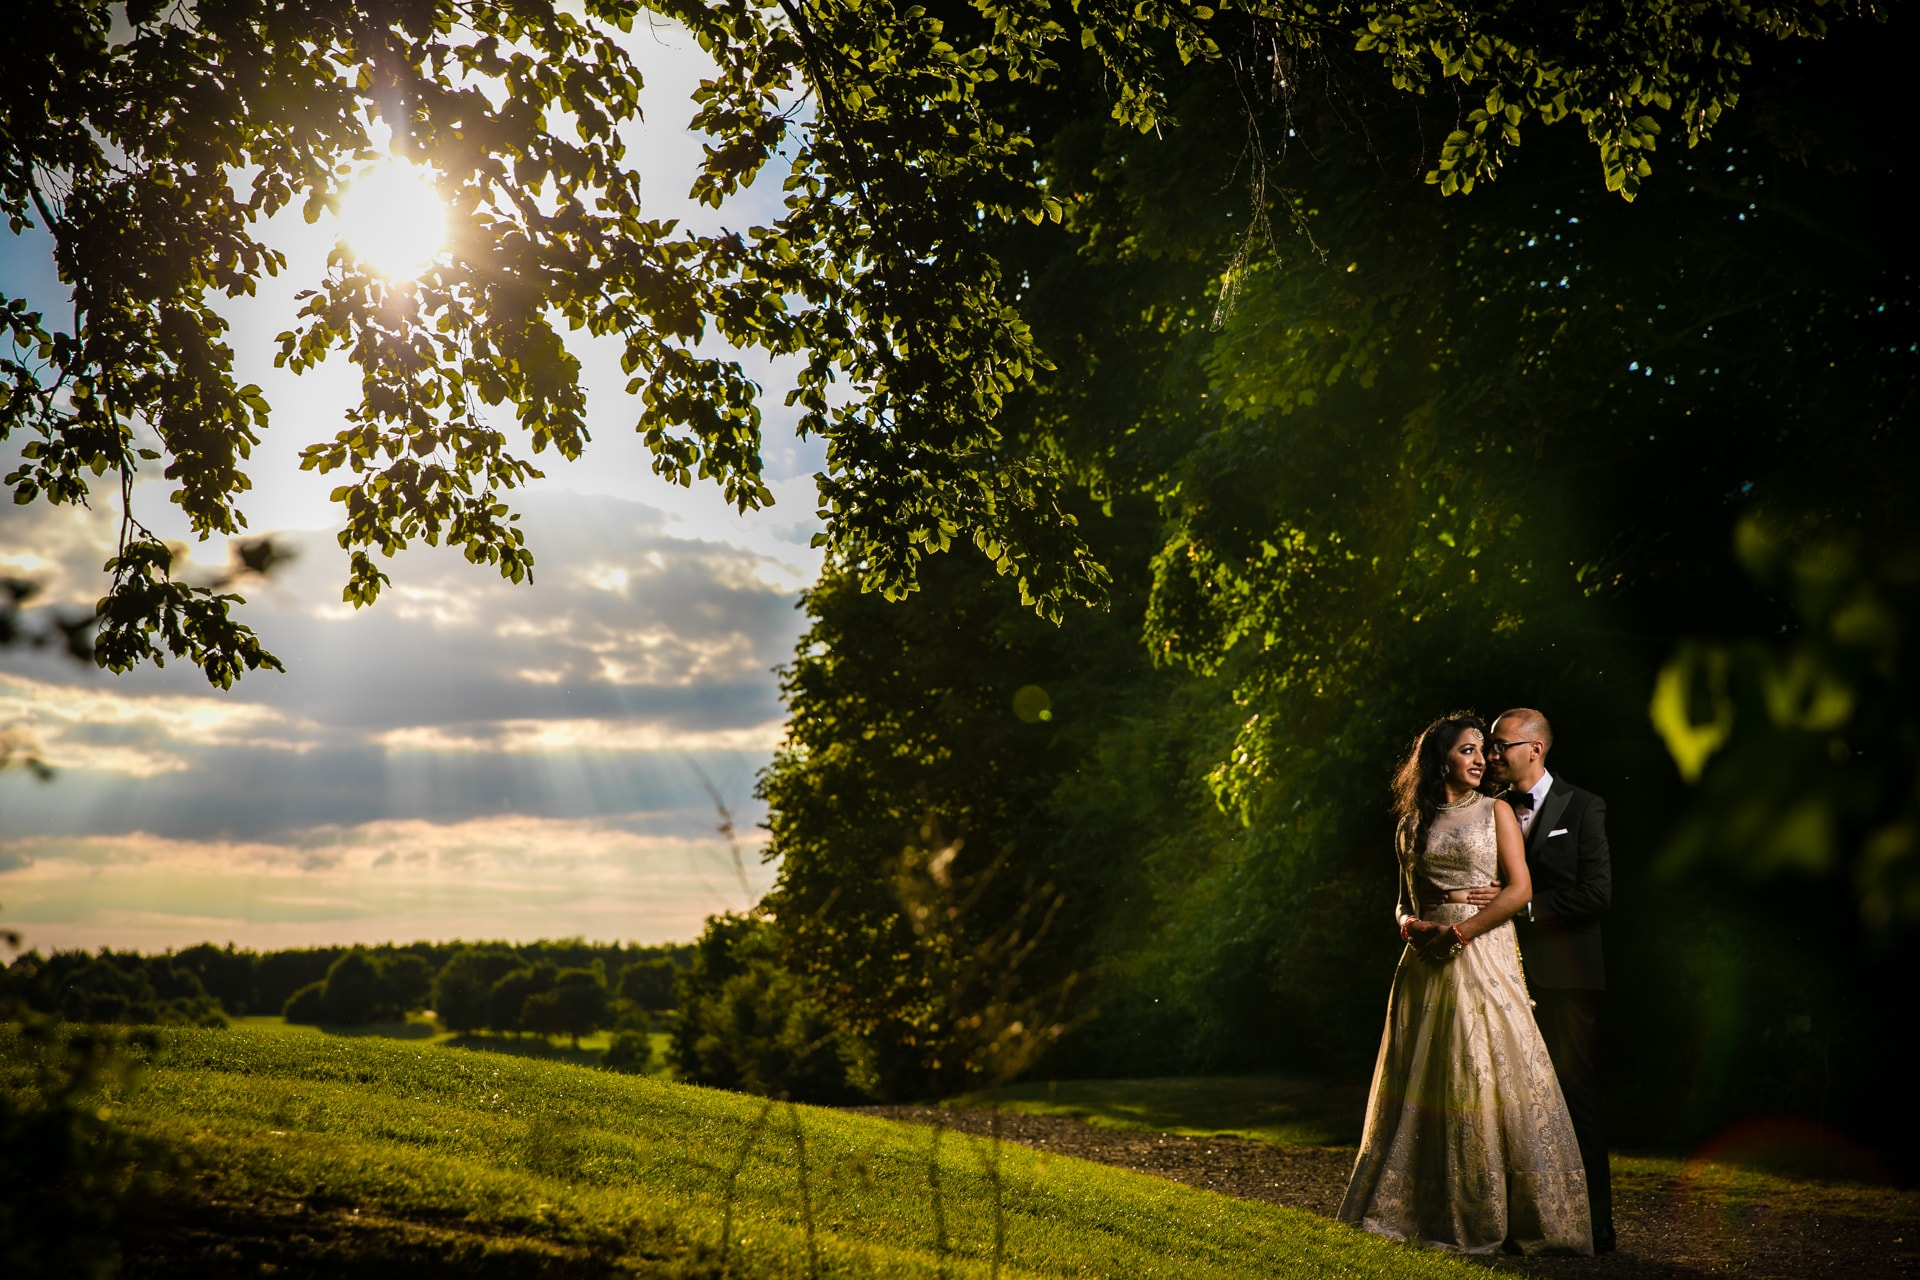 Sunset portraits at Manor of Groves